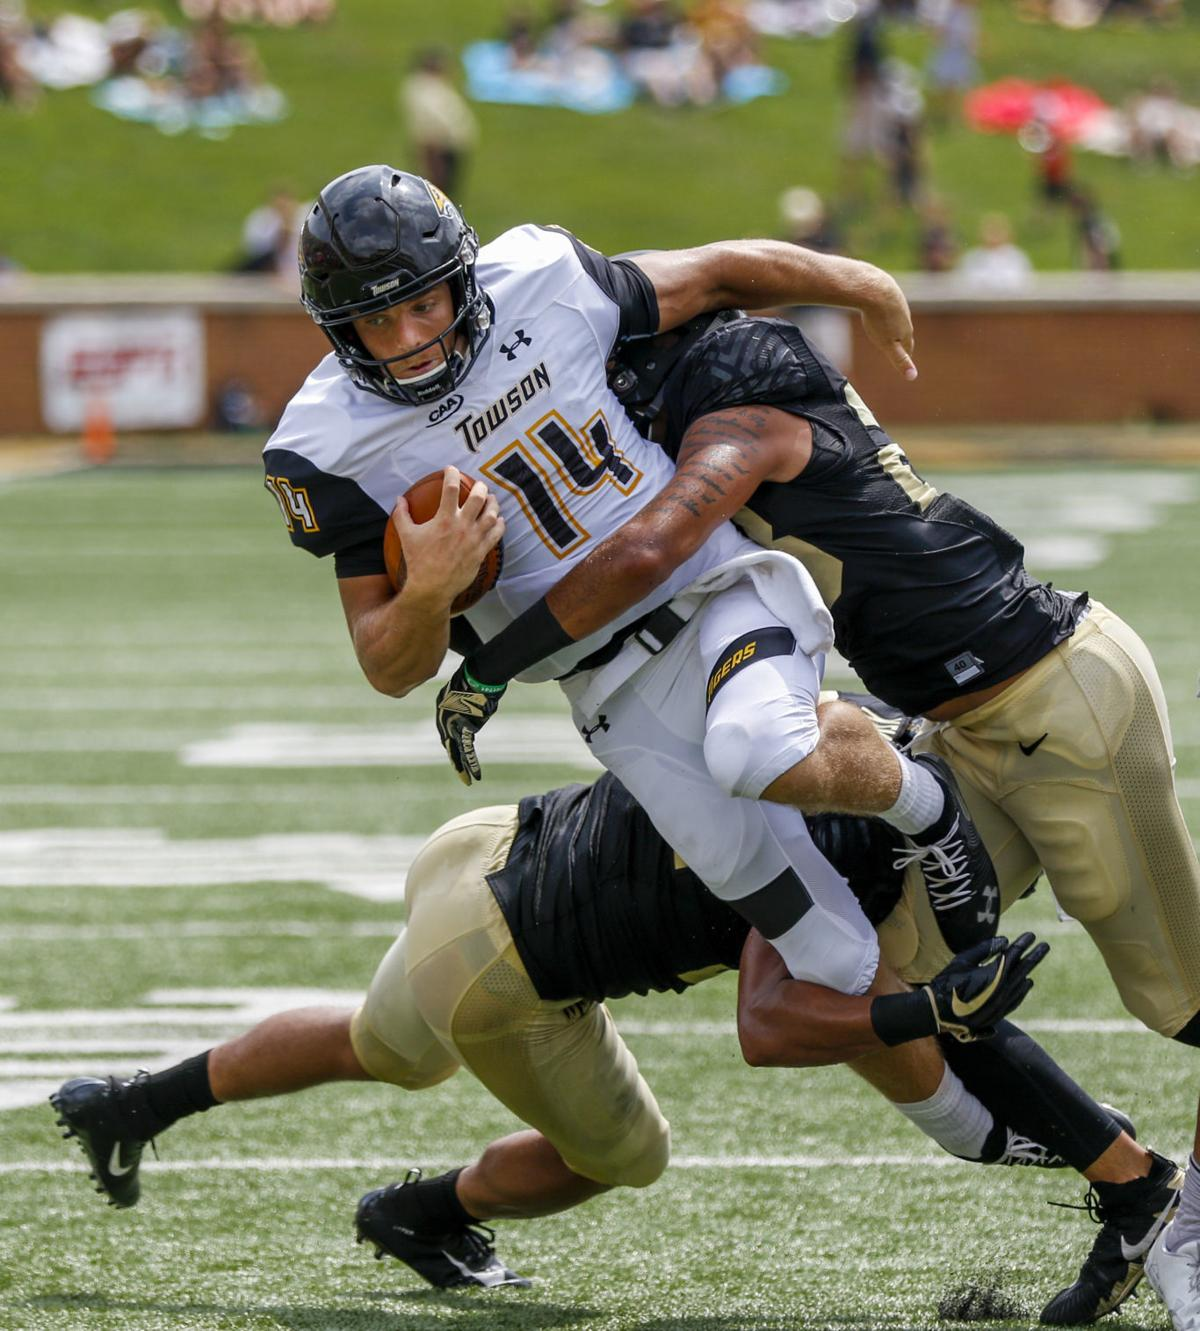 0615_dnr_TowsonSecondary